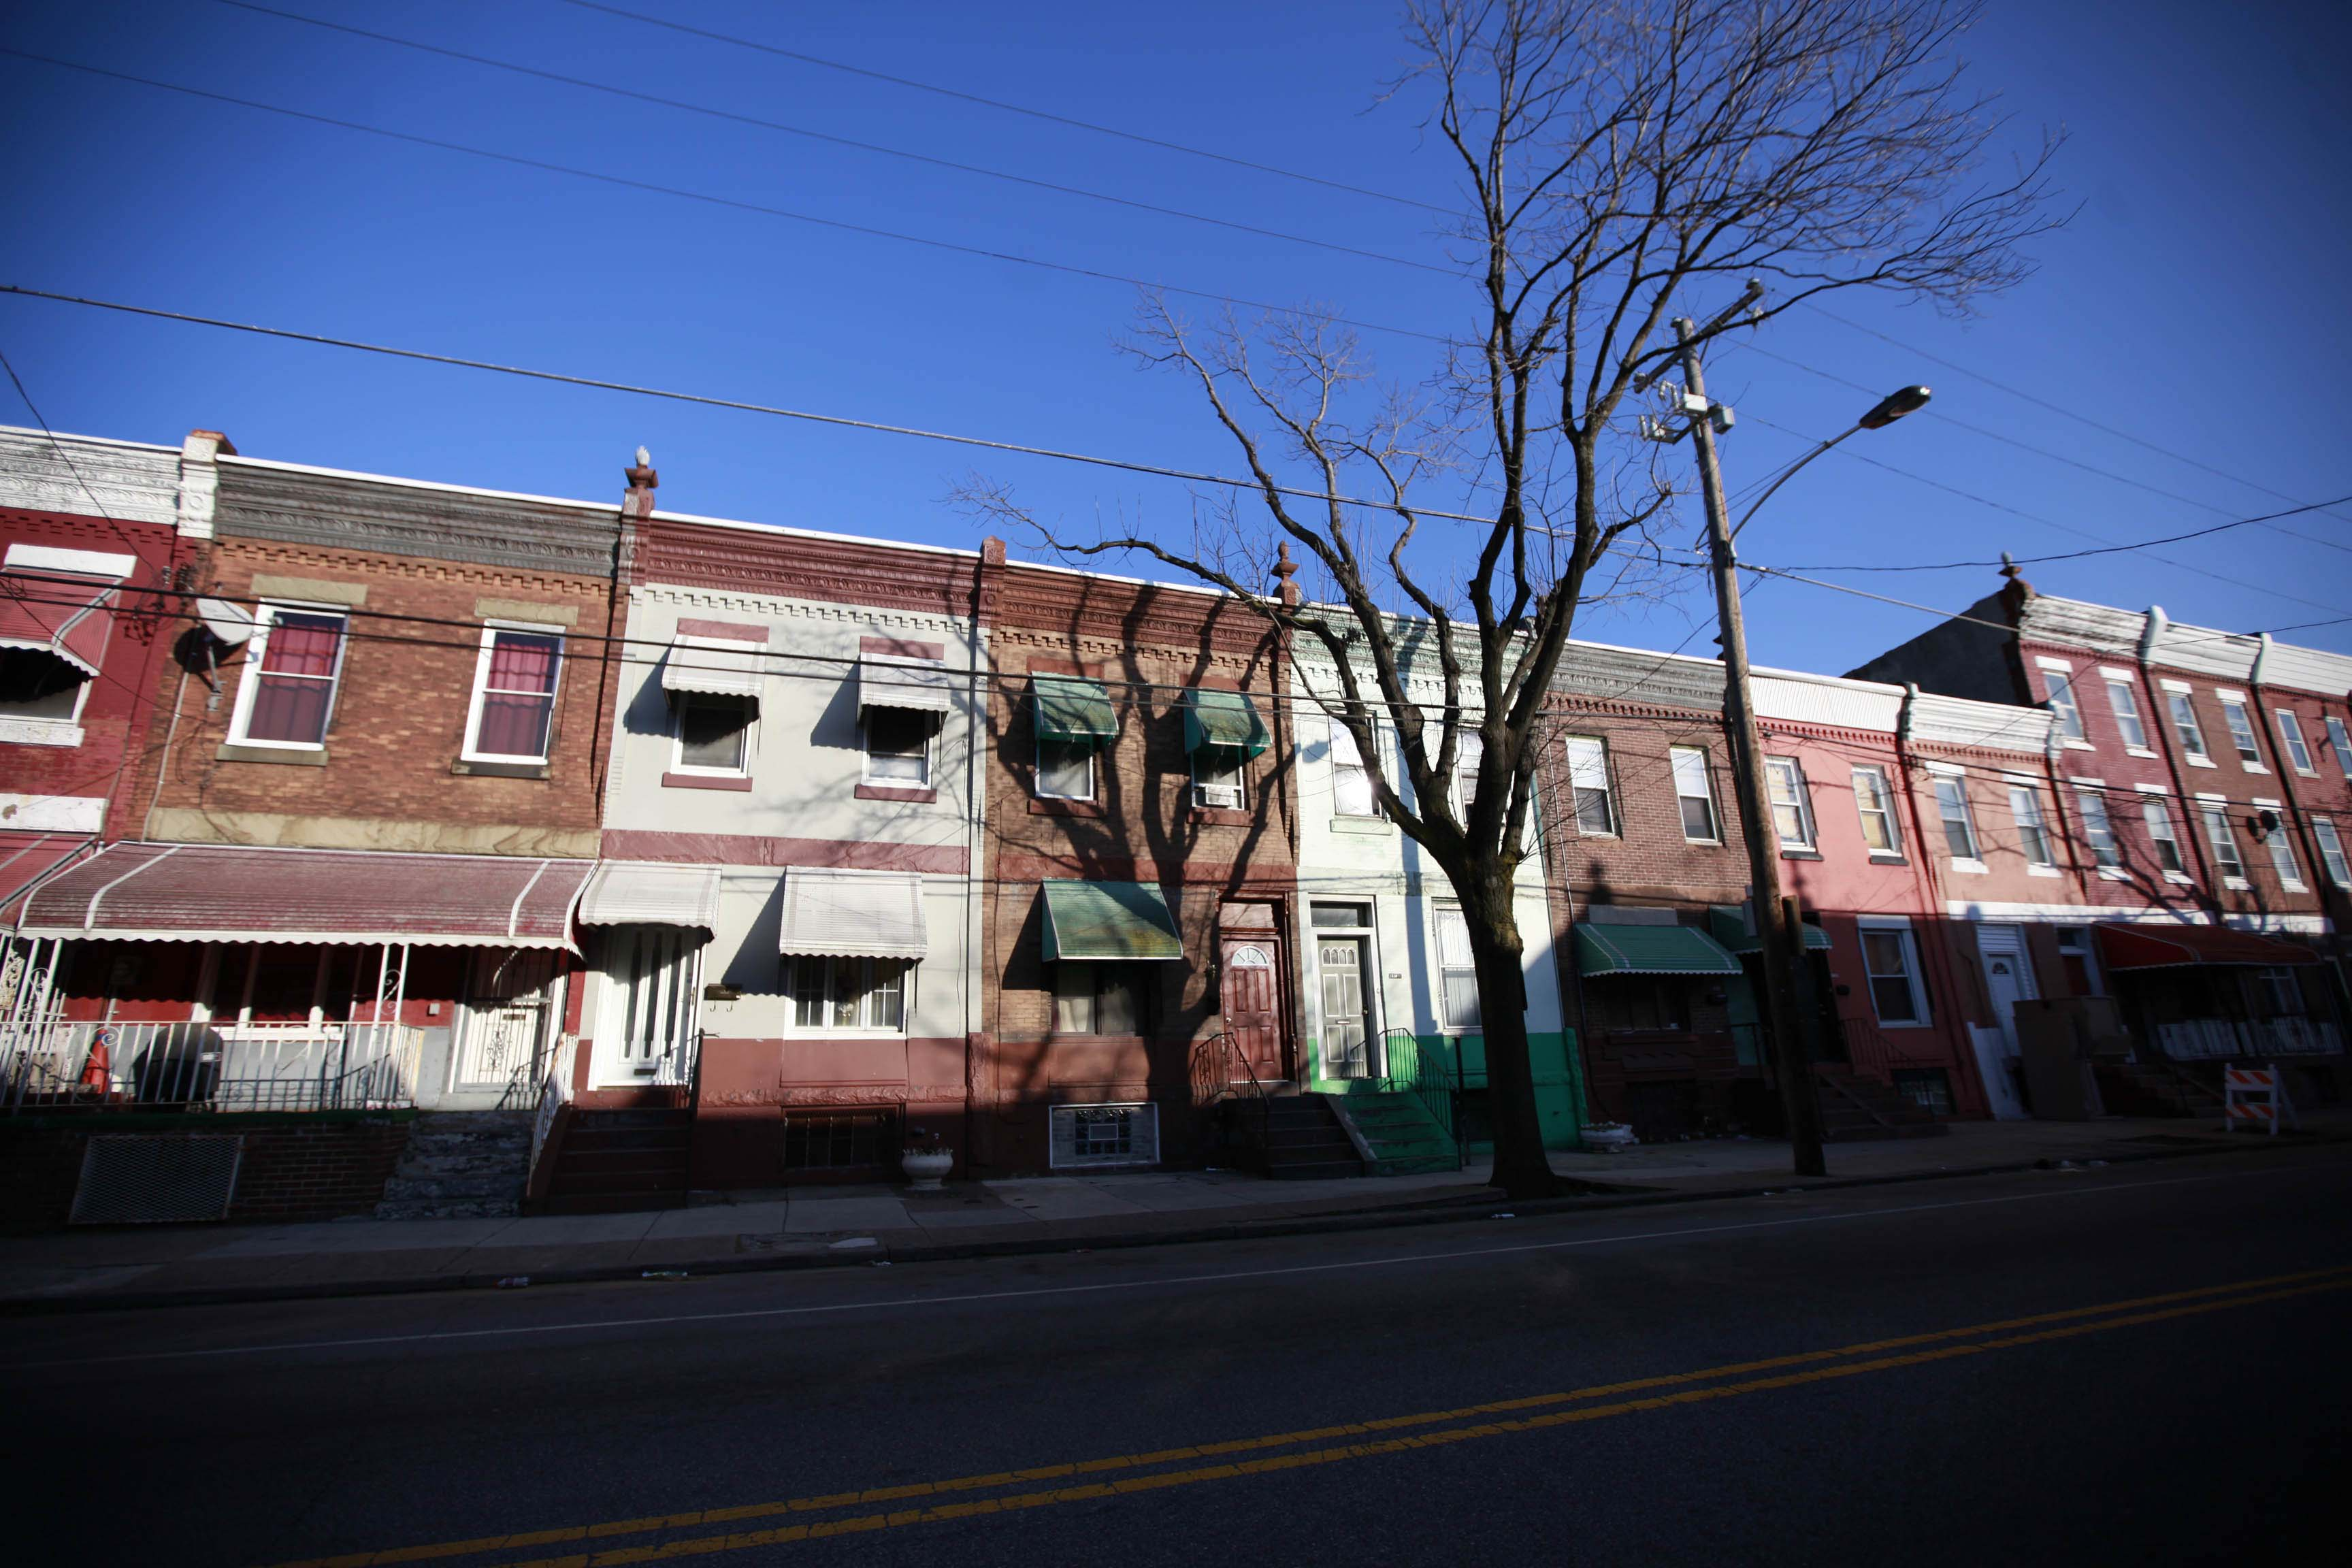 1500 block of N. 29th Street, Philadelphia March 6, 2013. (David Swanson / Inquirer Staff Photographer)